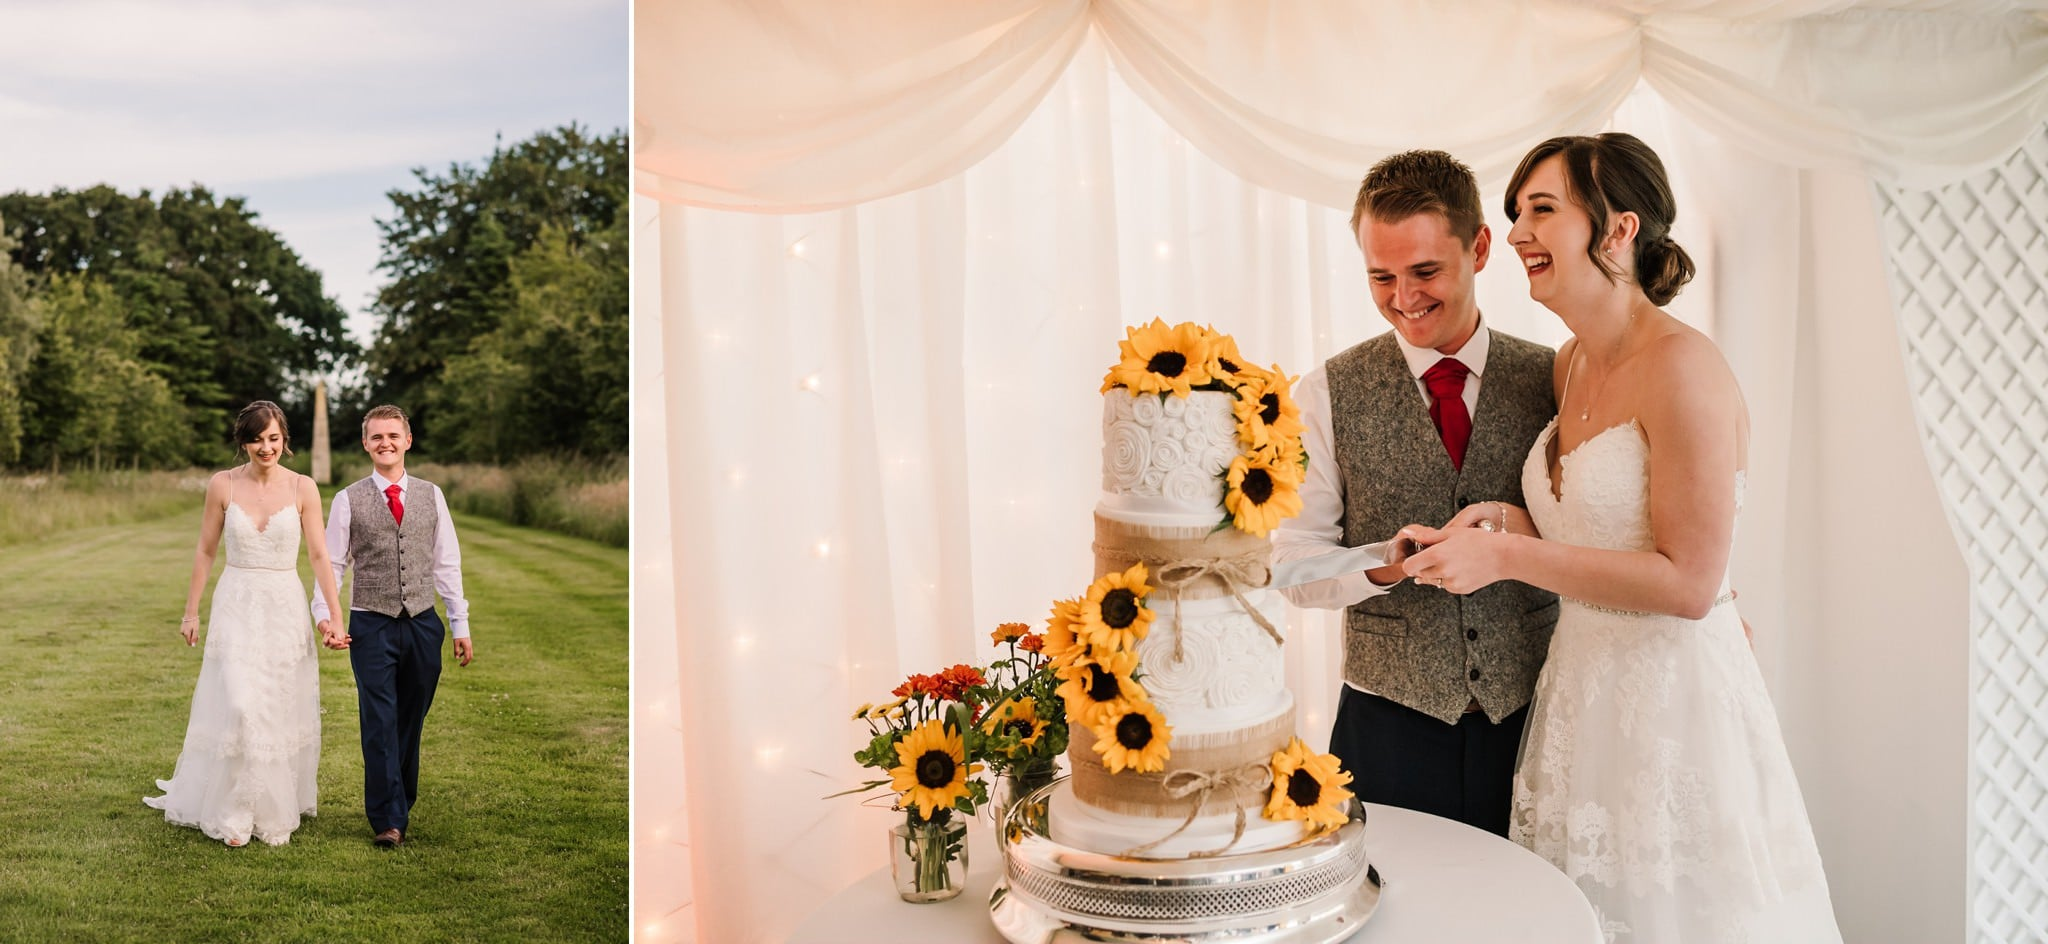 Photos of cutting the cake at Parley Manor Wedding